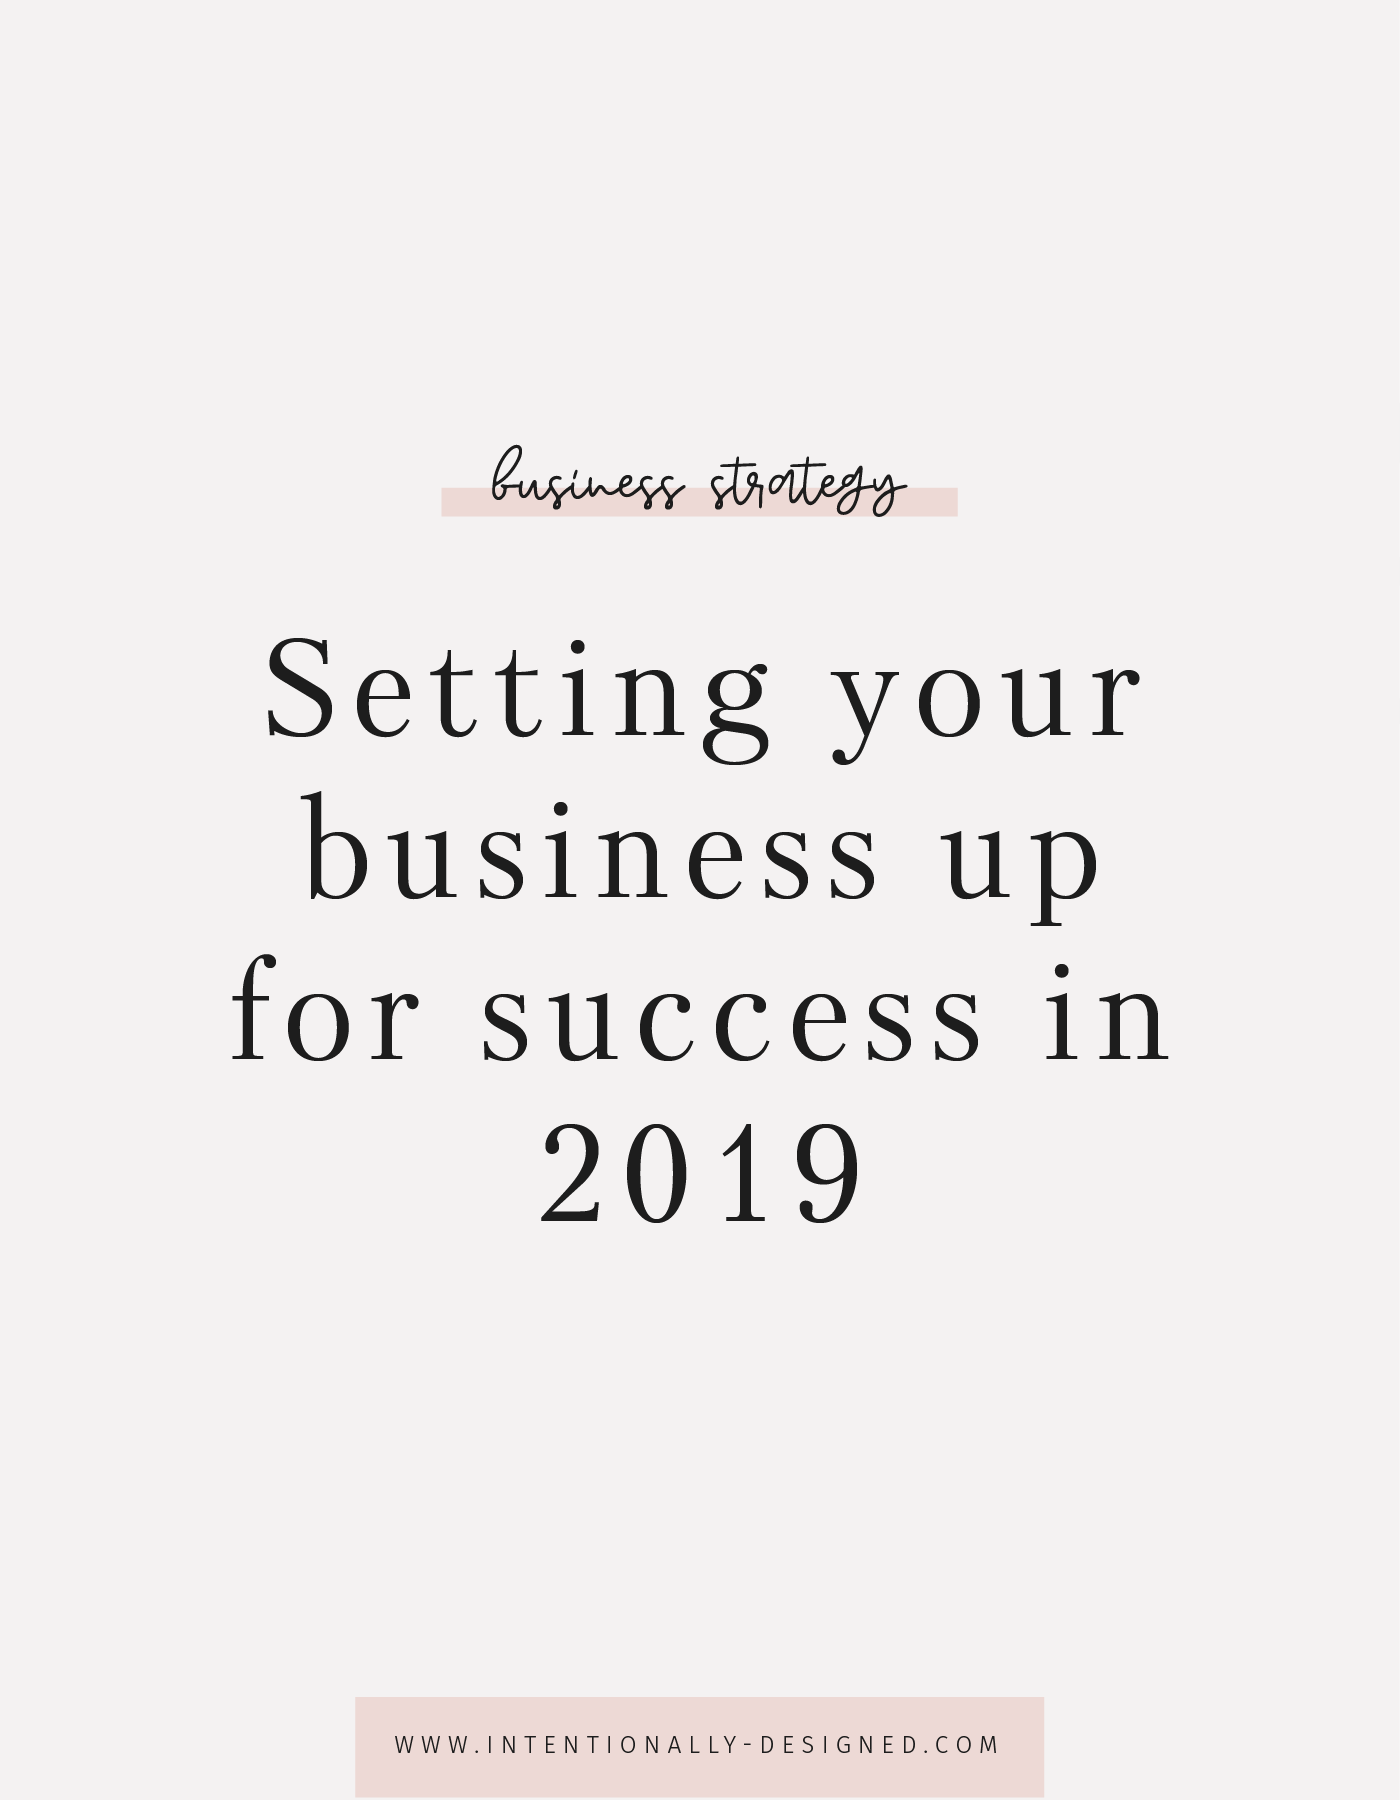 Setting your business up for success in 2019